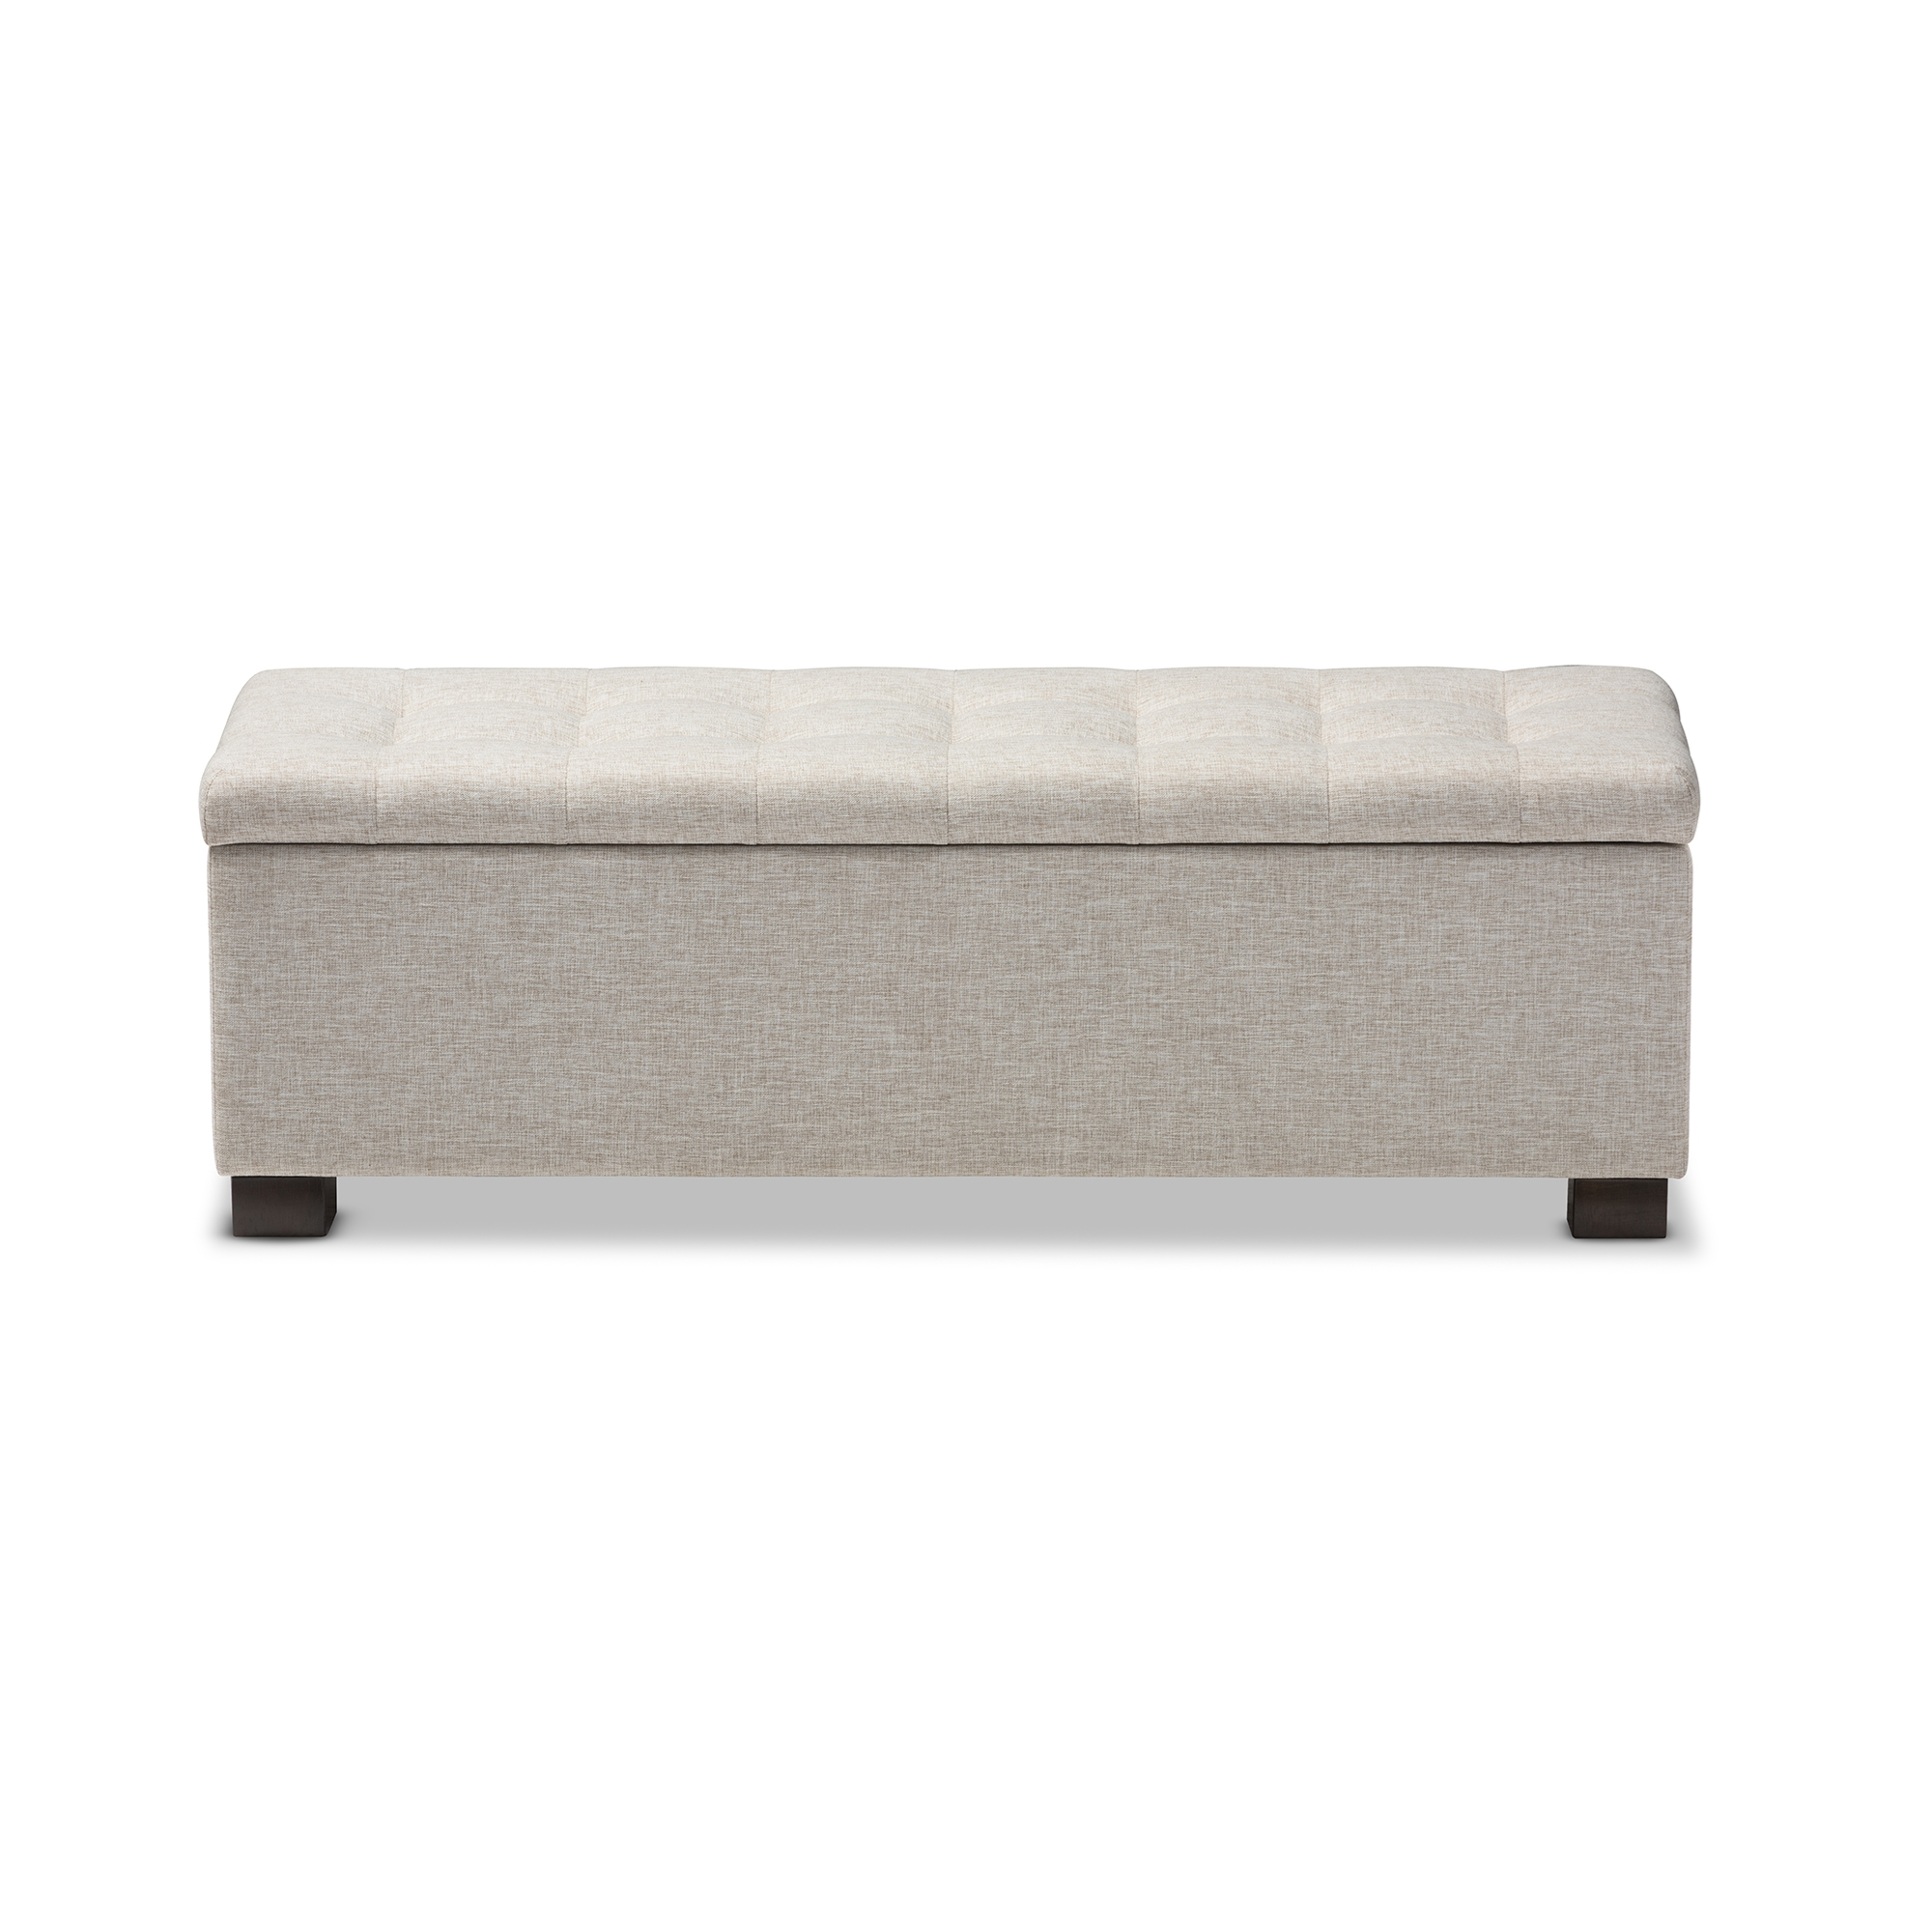 Baxton Studio Roanoke Modern and Contemporary Beige Fabric